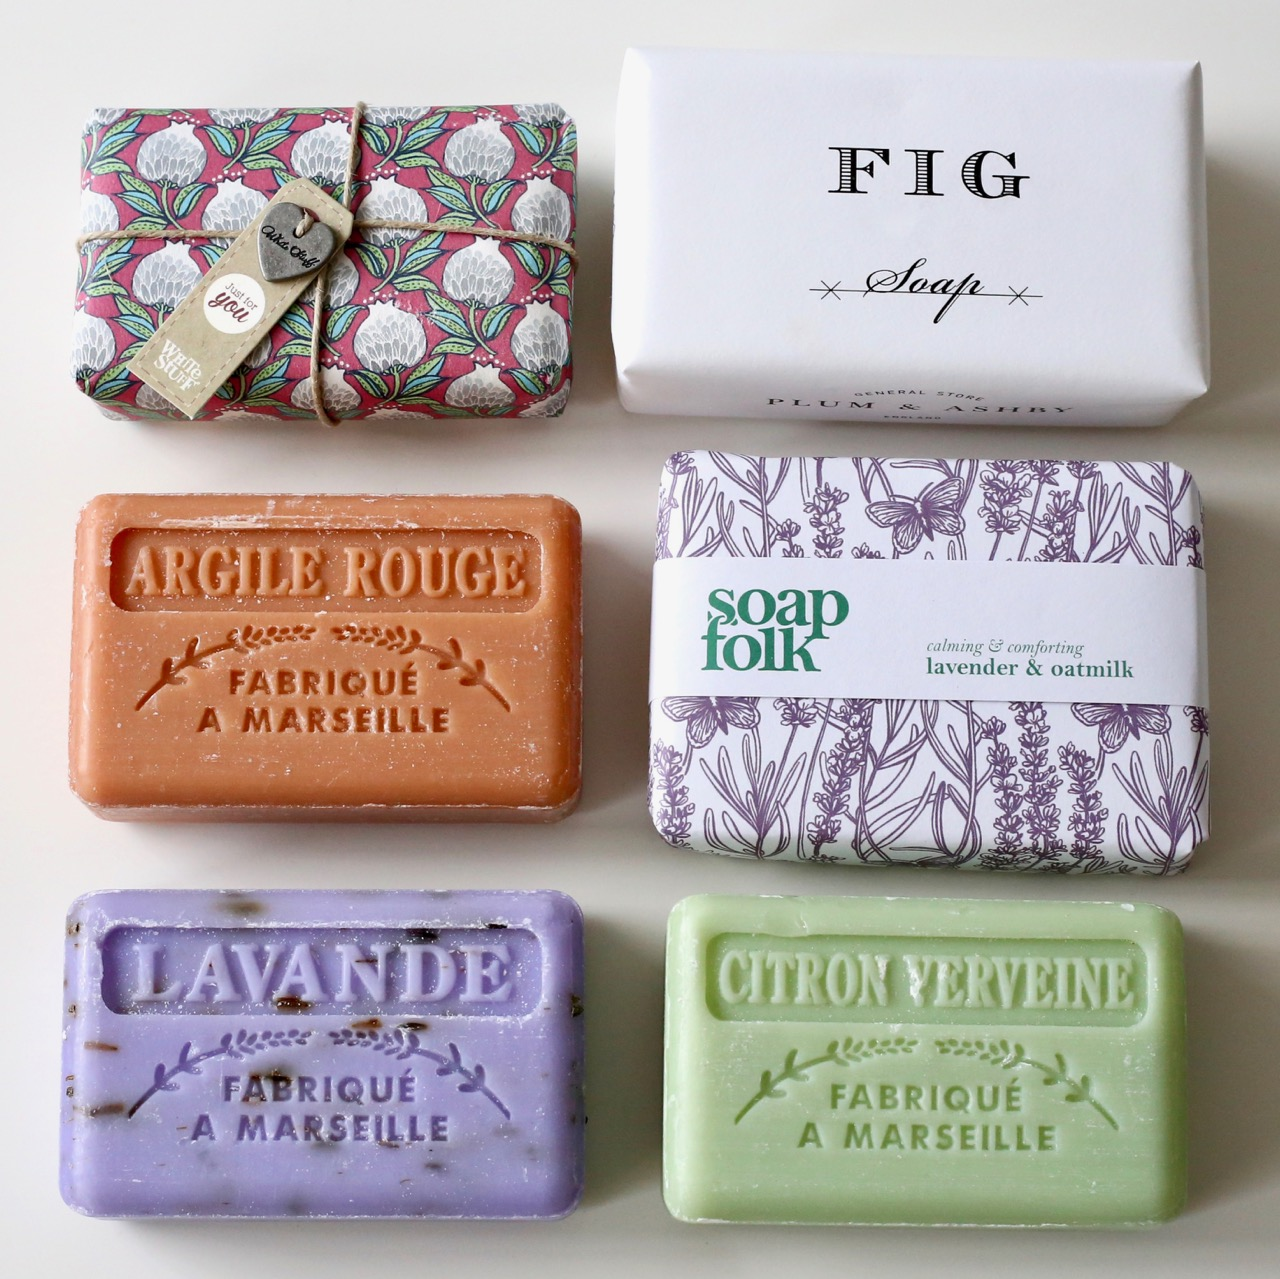 Living more thoughtfully: use traditional soap